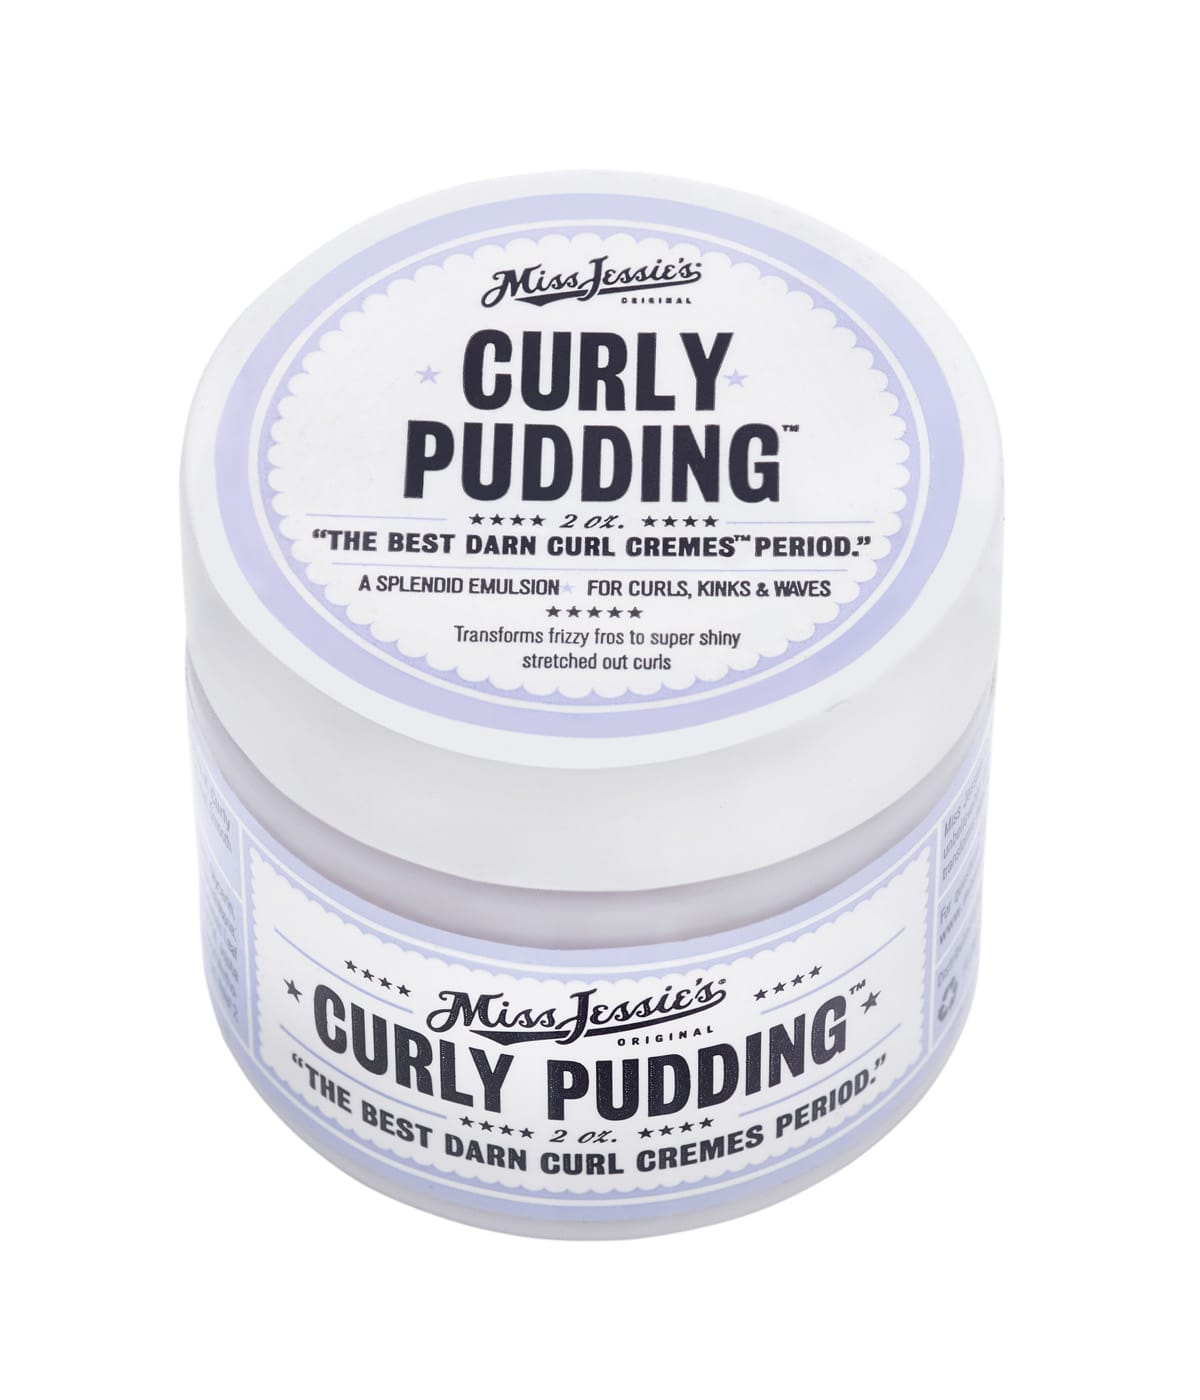 Curly Pudding